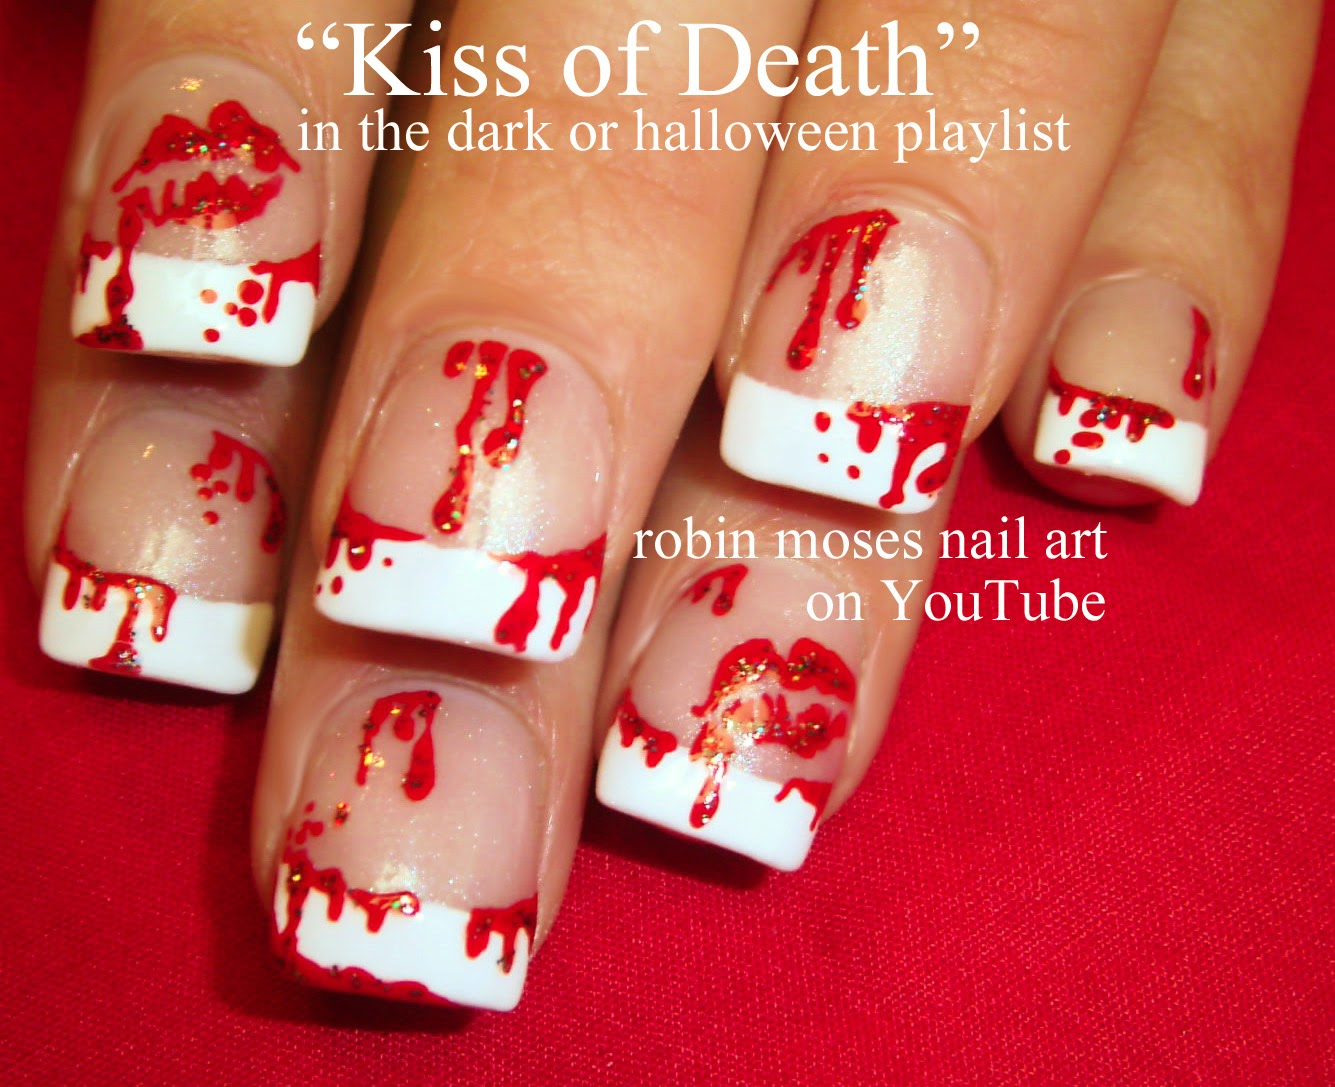 halloween nails halloween nail art blood splatter nails bloody nails scary nails halloween nail art bloody nail art halloween ideas